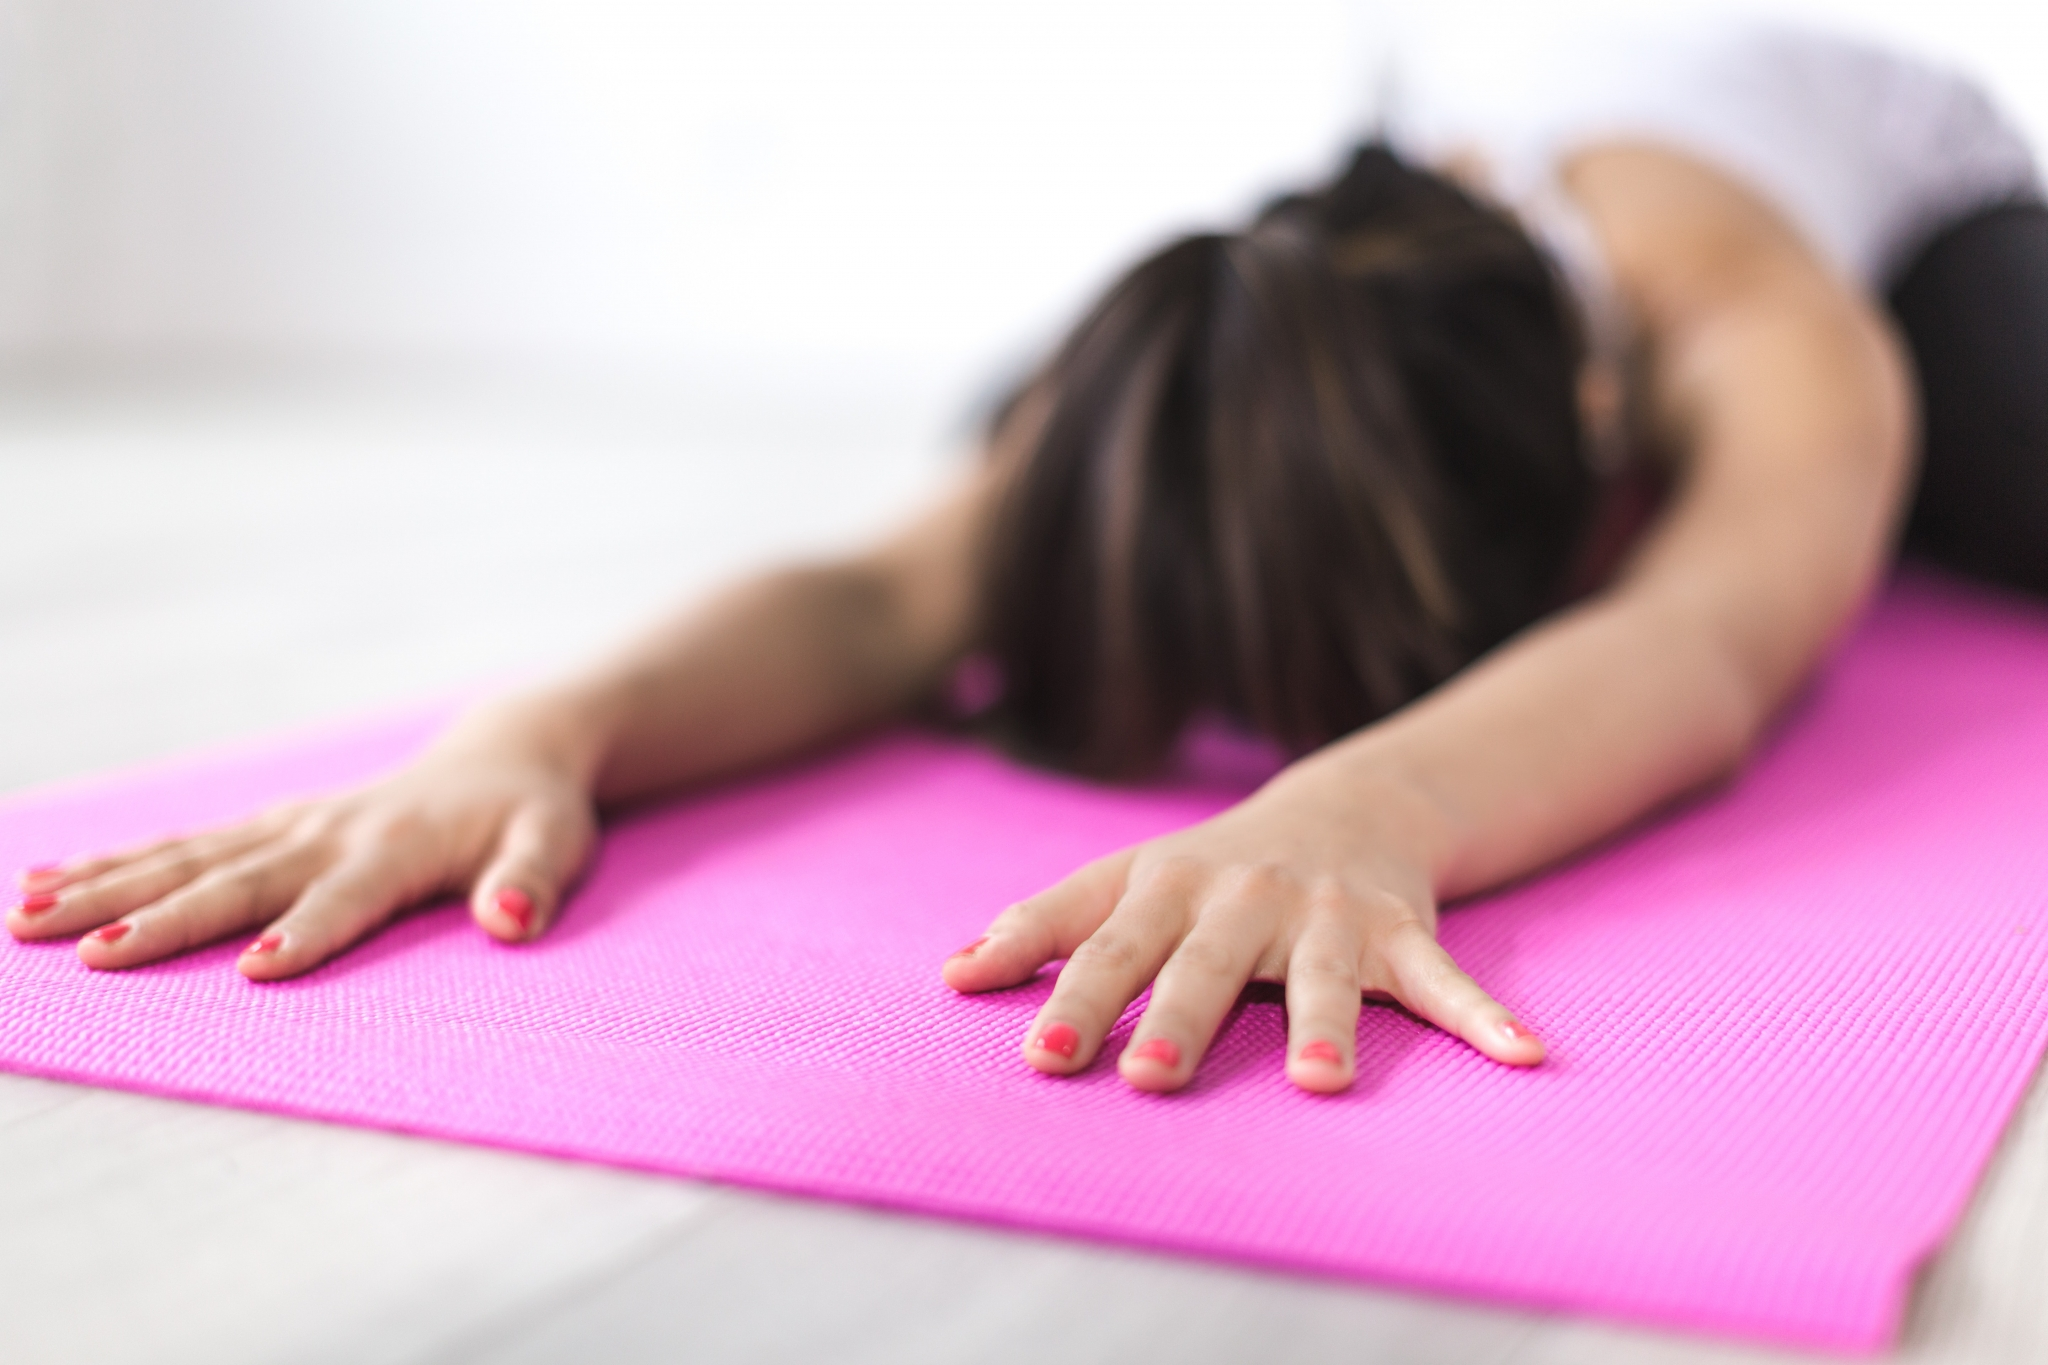 woman on pink yoga mat with hands extended